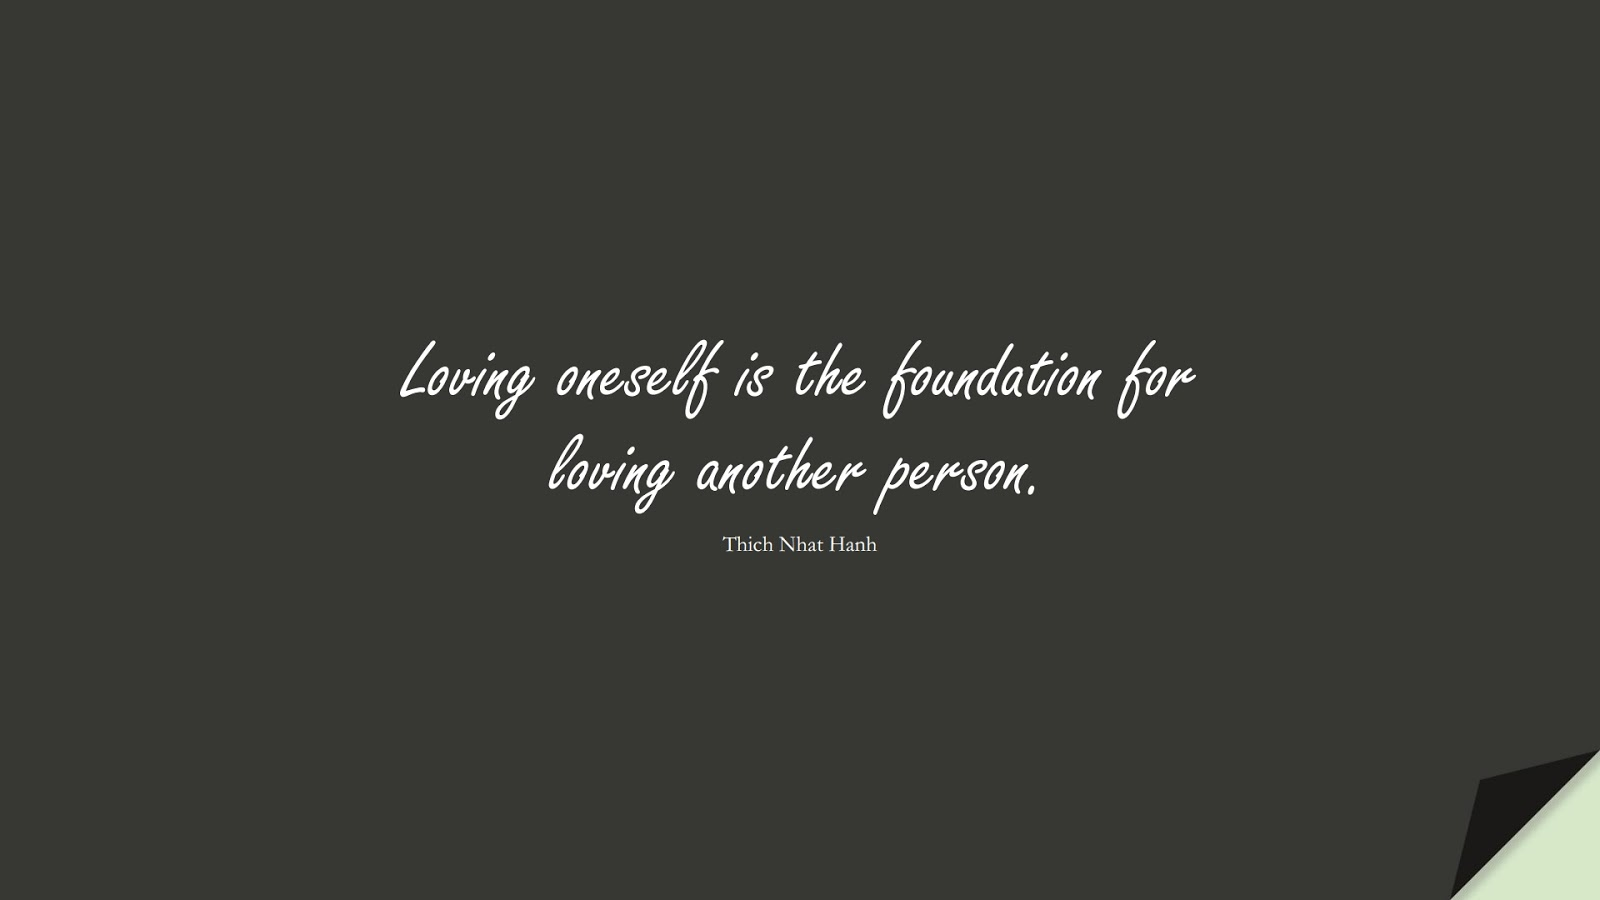 Loving oneself is the foundation for loving another person. (Thich Nhat Hanh);  #LoveYourselfQuotes